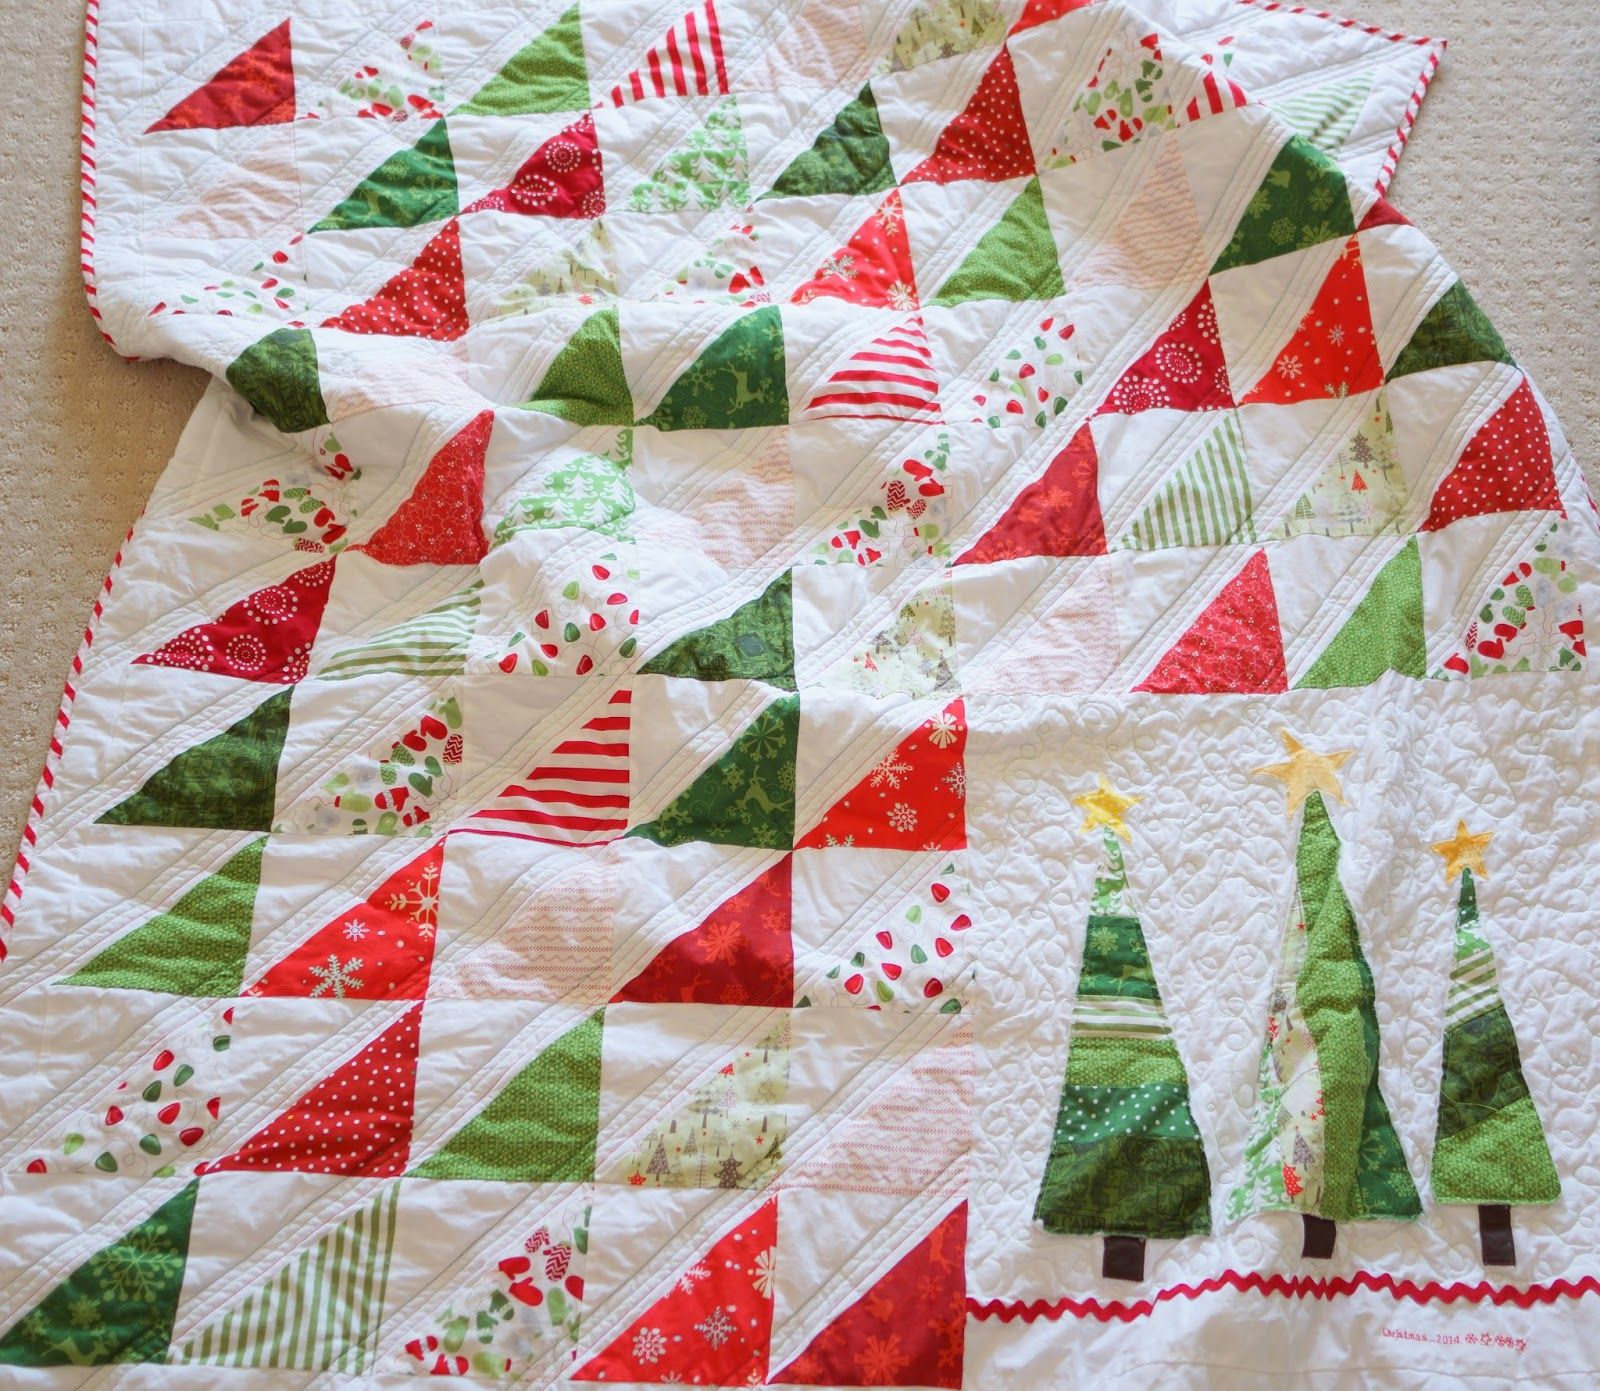 Lo, Ray, & Me: Easy Triangle Christmas Quilt | QUILT - Winter ... : quilt patterns christmas - Adamdwight.com